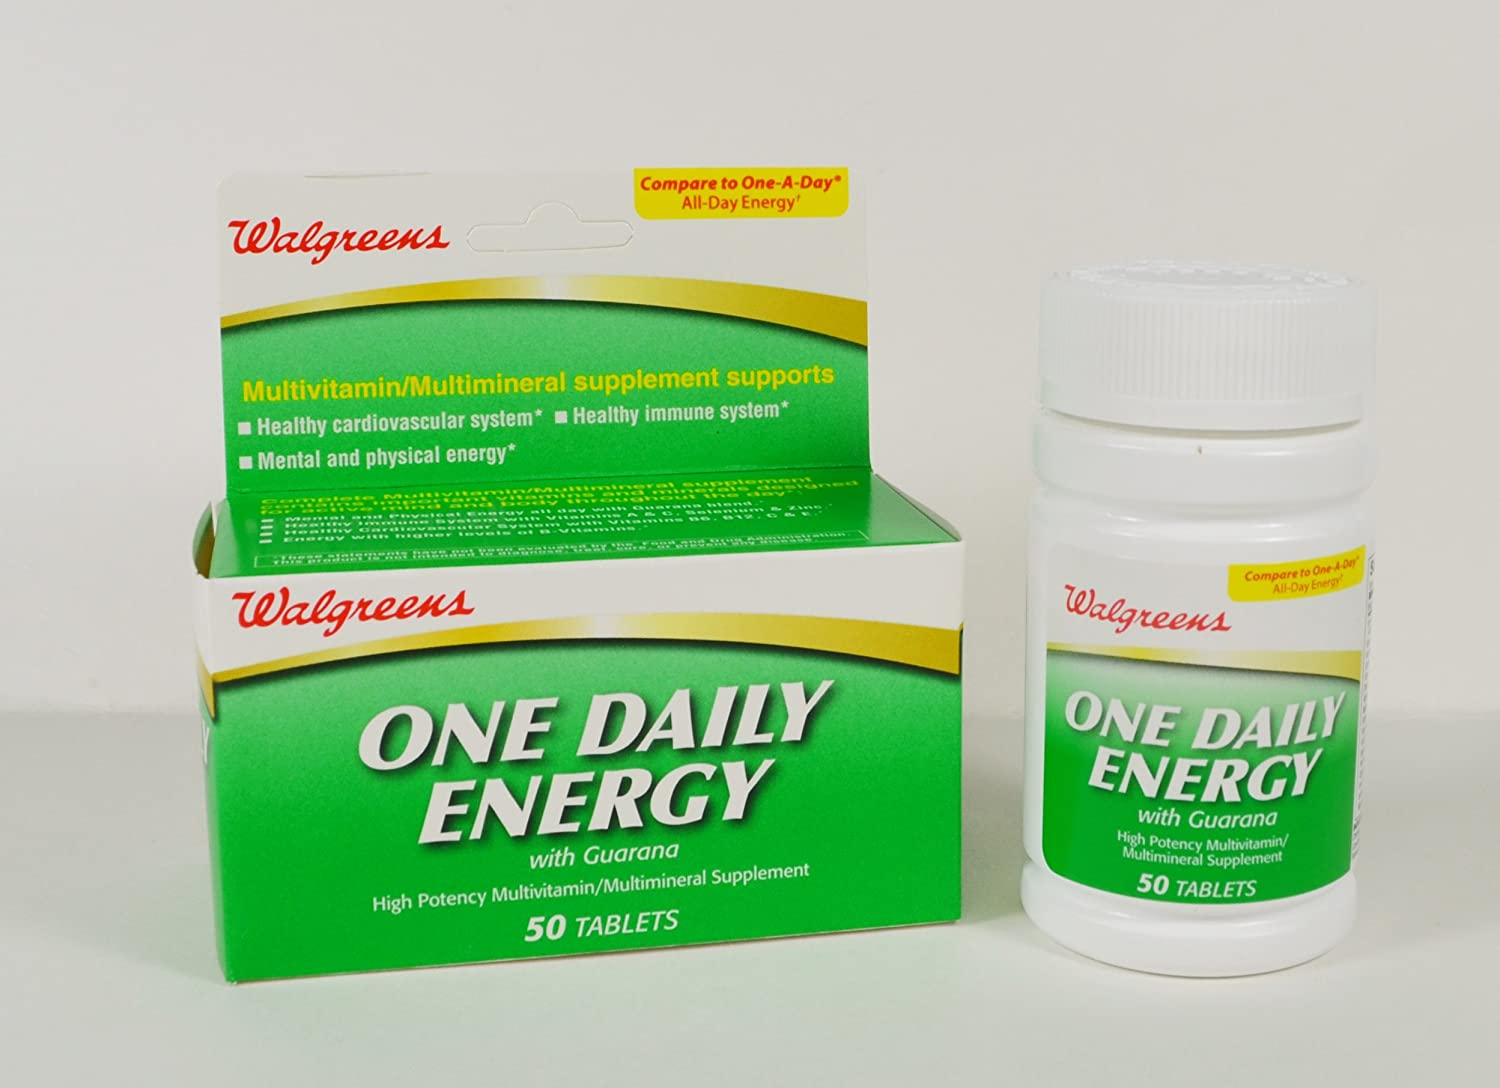 Amazon.com: WALGREENS ONE DAILY ENERGY WITH GUARANA 50 TABLETS: Health & Personal Care